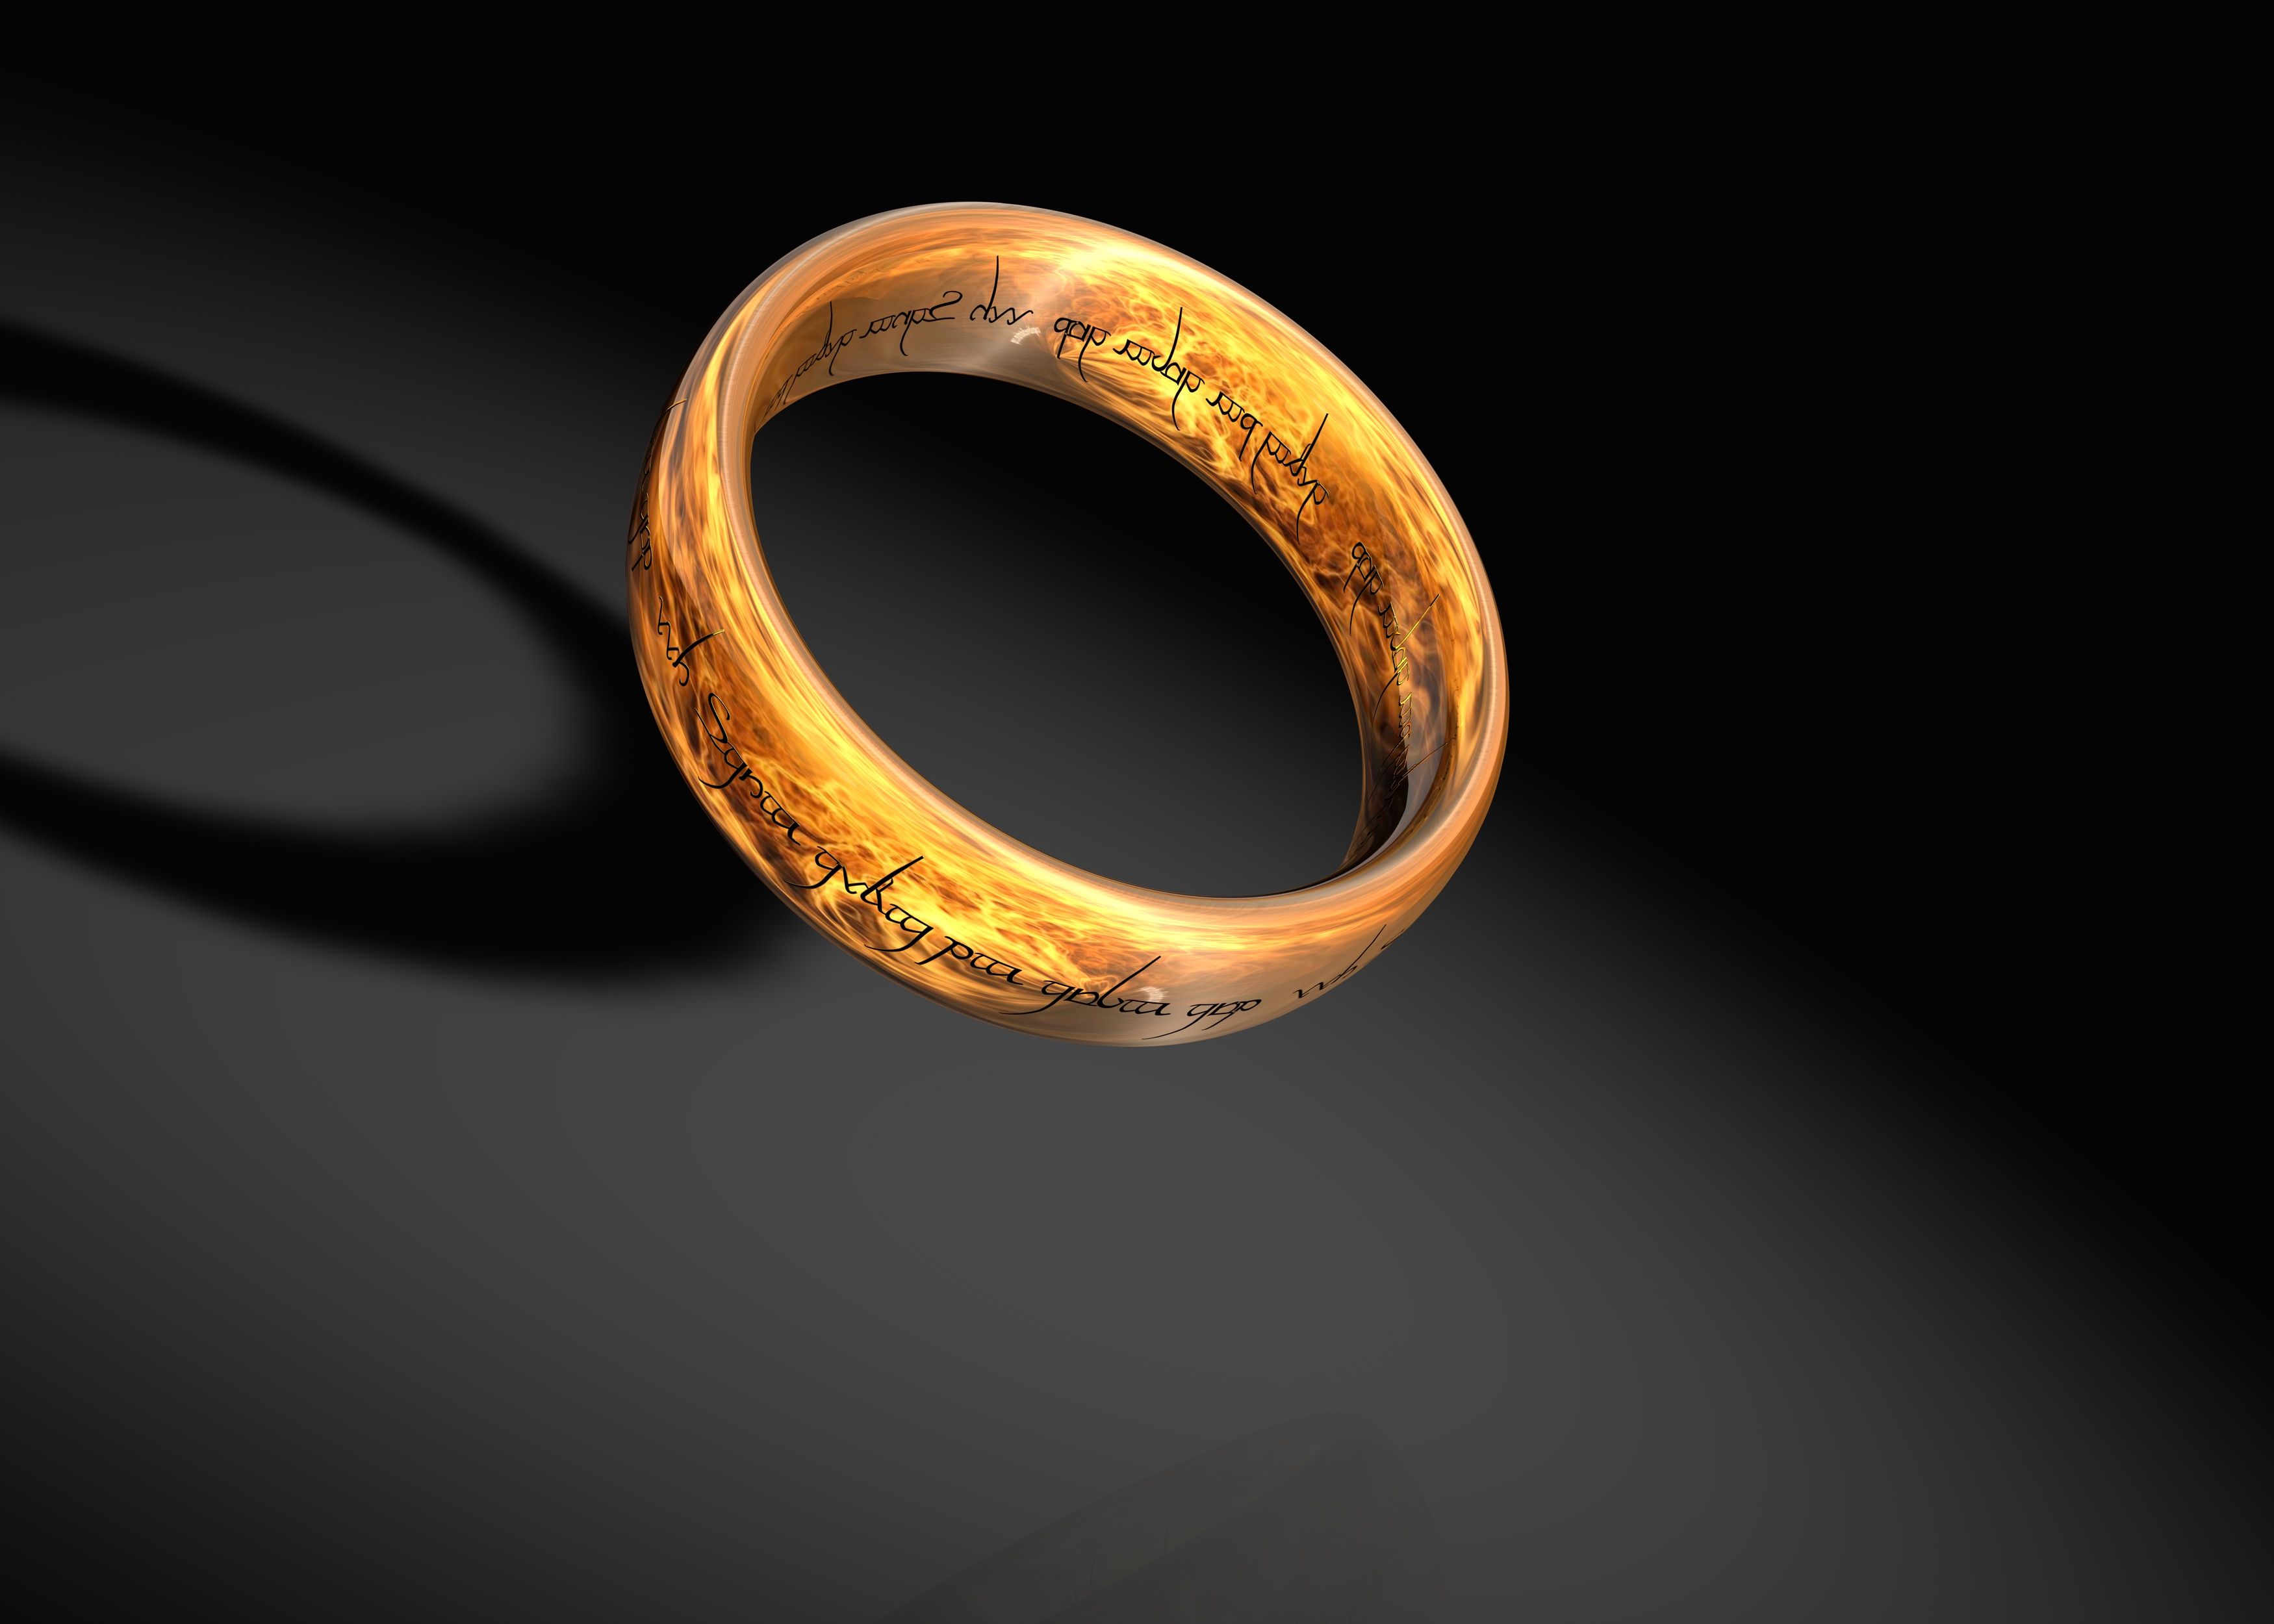 lord of the rings ring by cyberper on deviantart